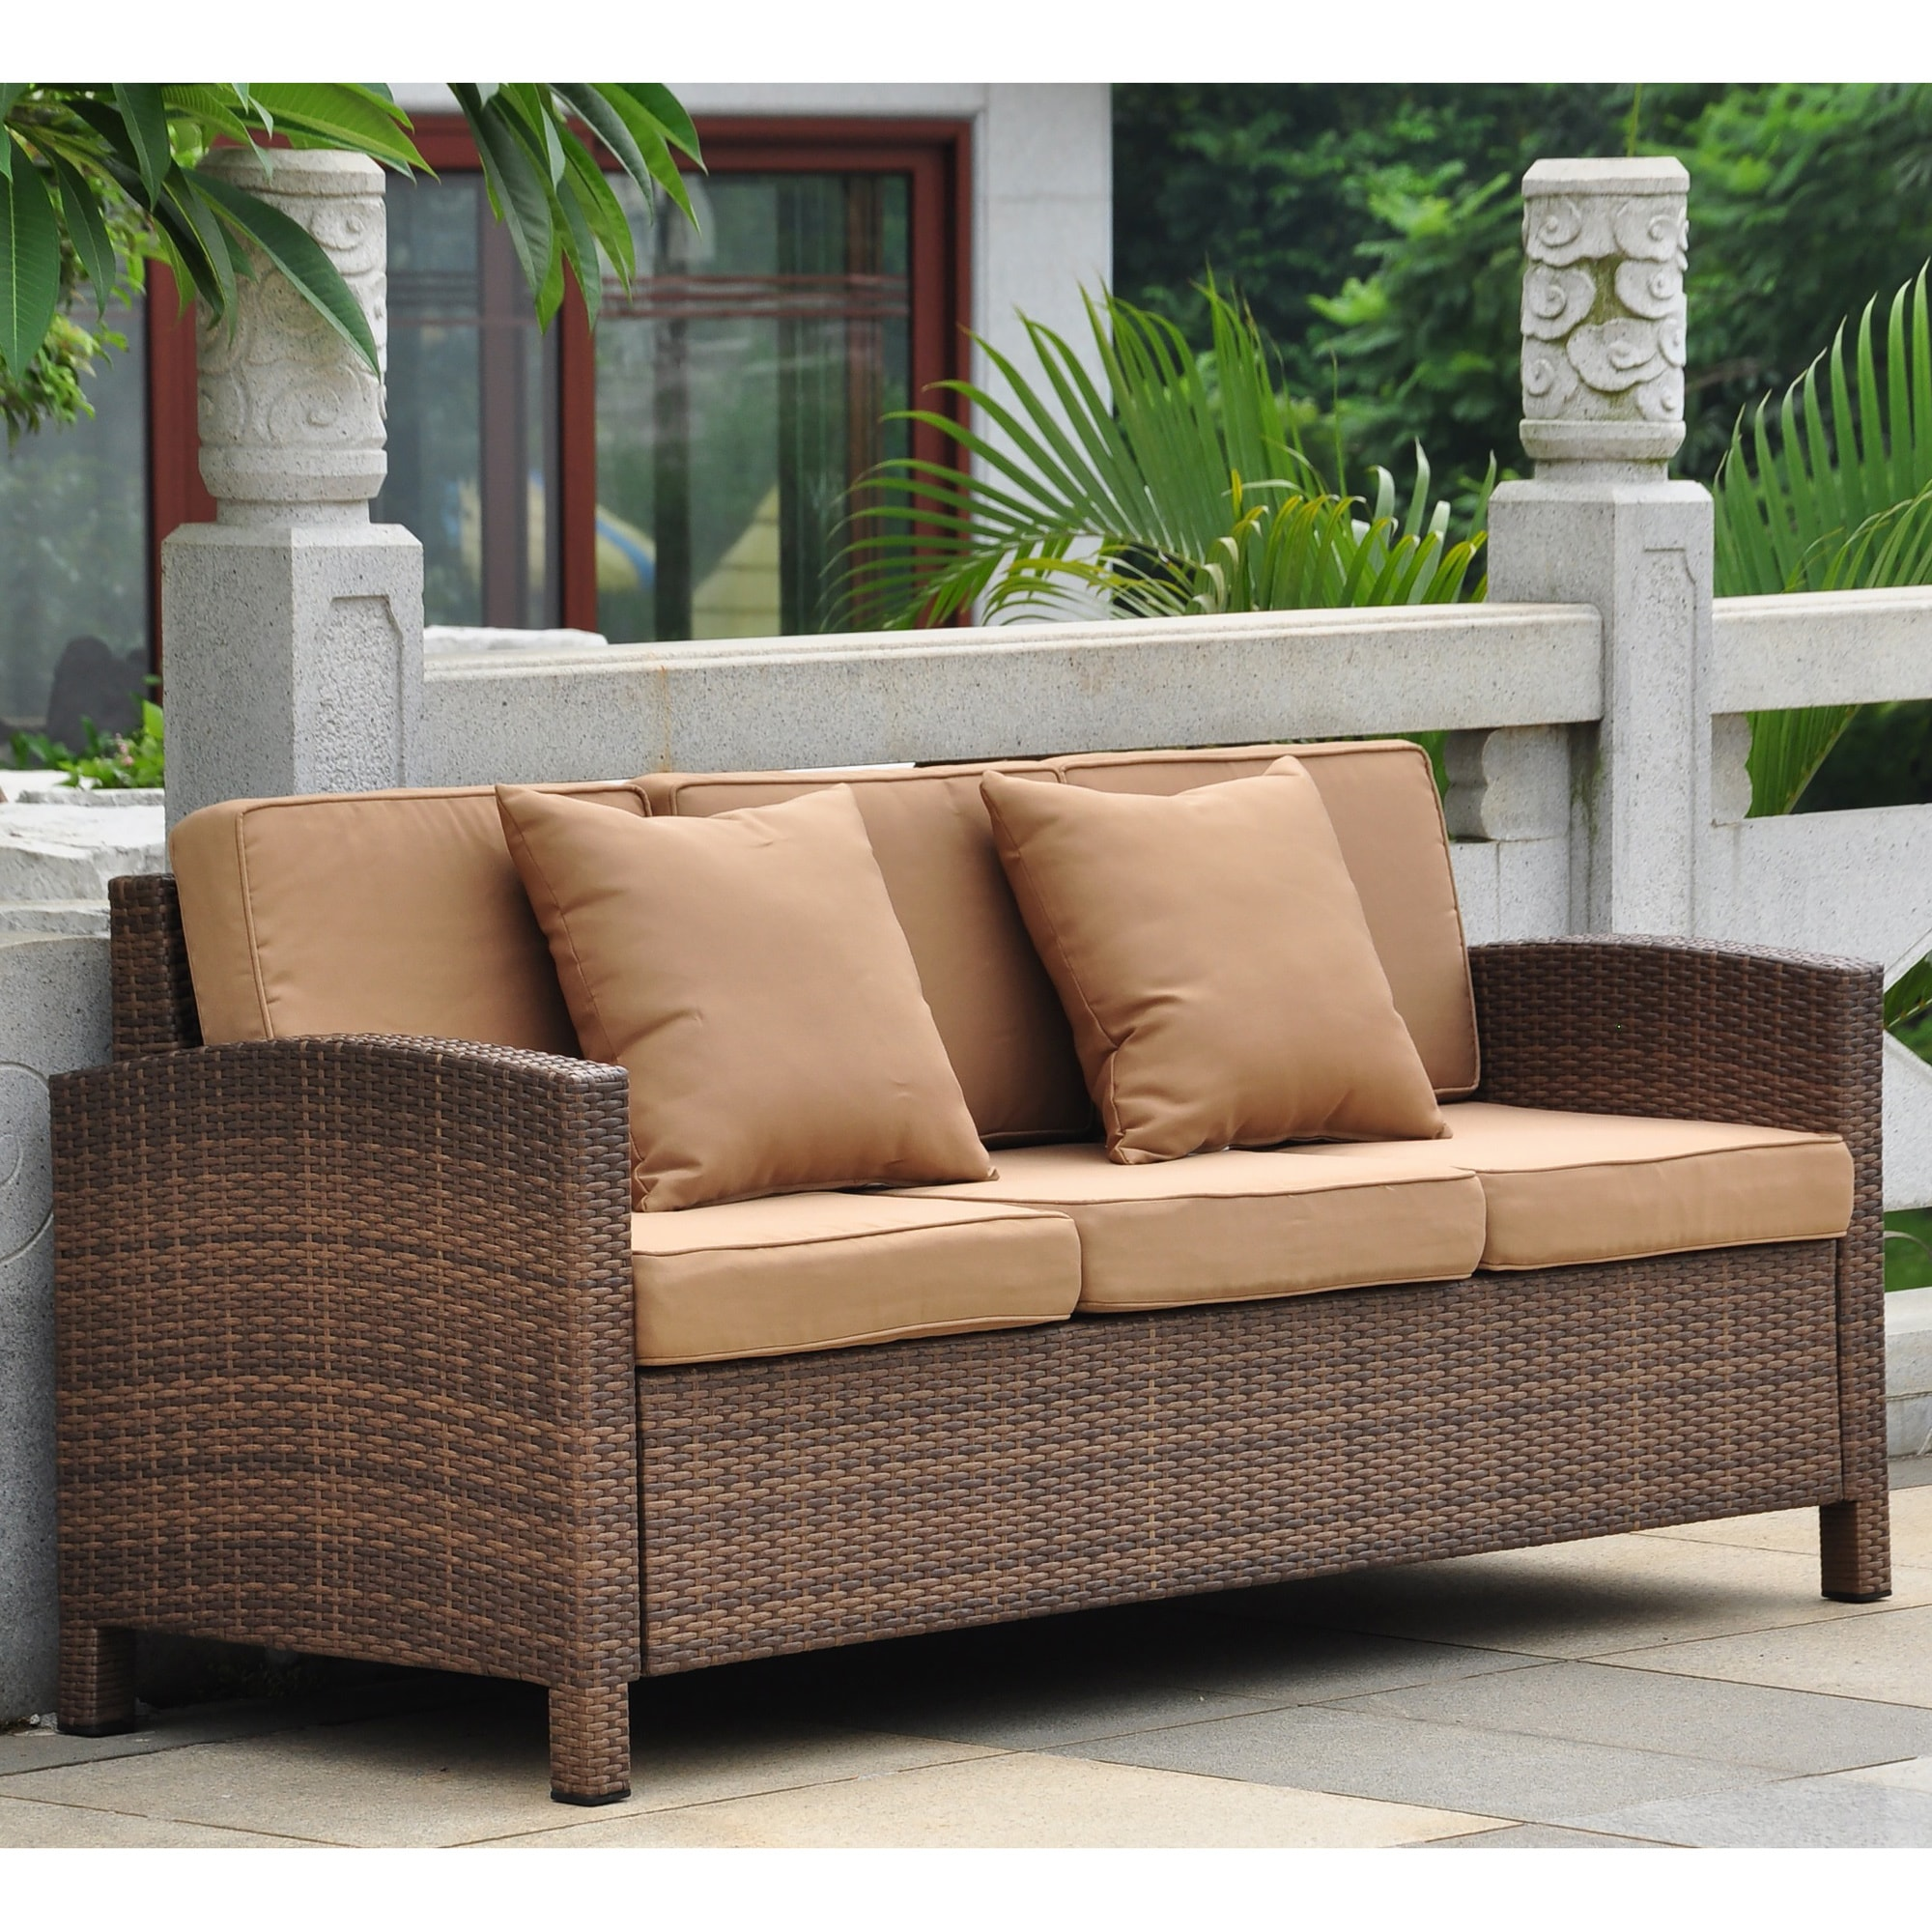 Luxury Aluminum Outdoor sofa